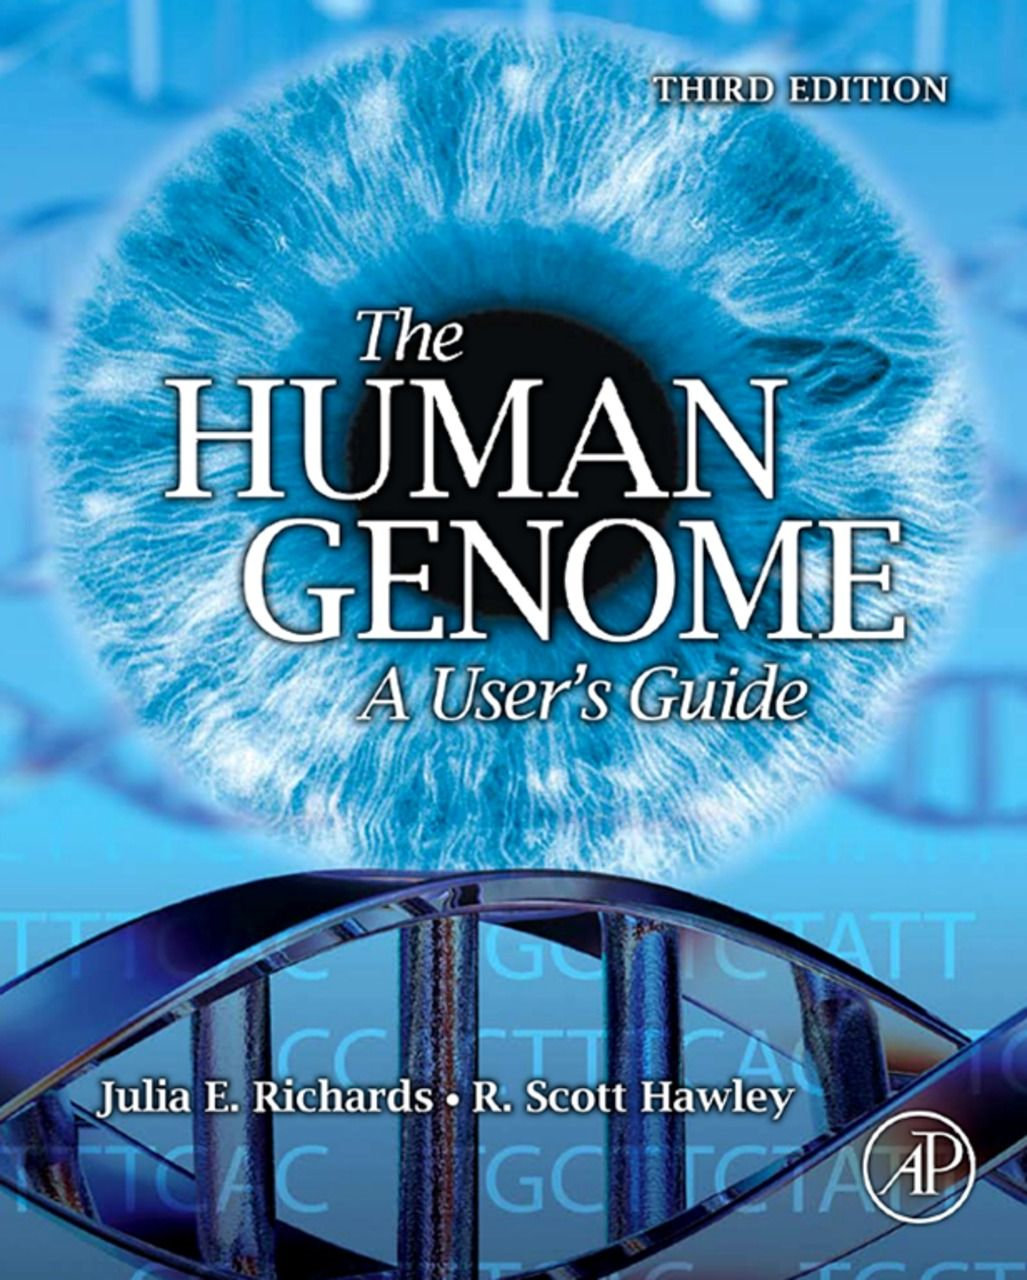 THE HUMAN GENOME By: Julia E. Richards,R. Scott Hawley